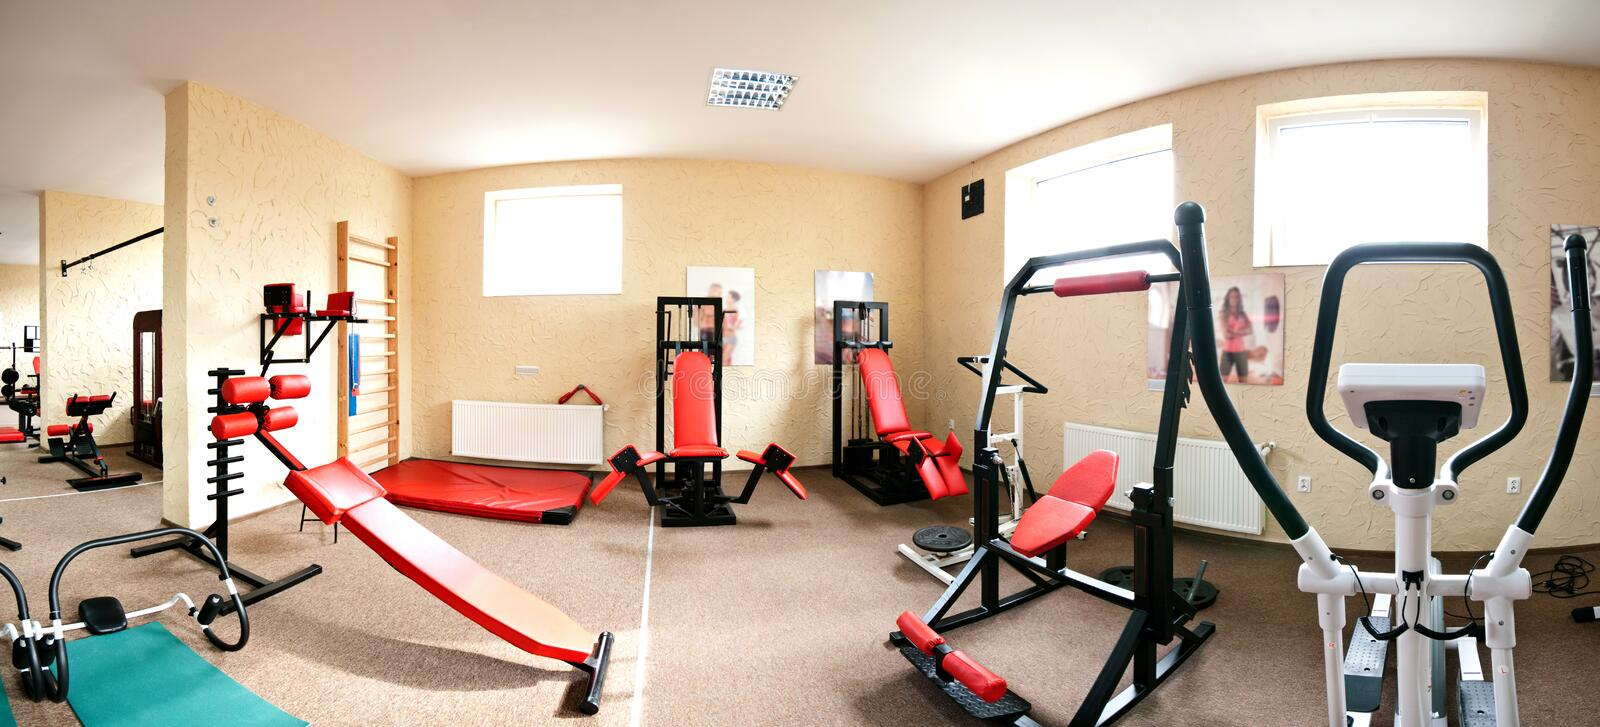 Interior of modern gym. Panoramic interior view of modern equipment in gym stock images